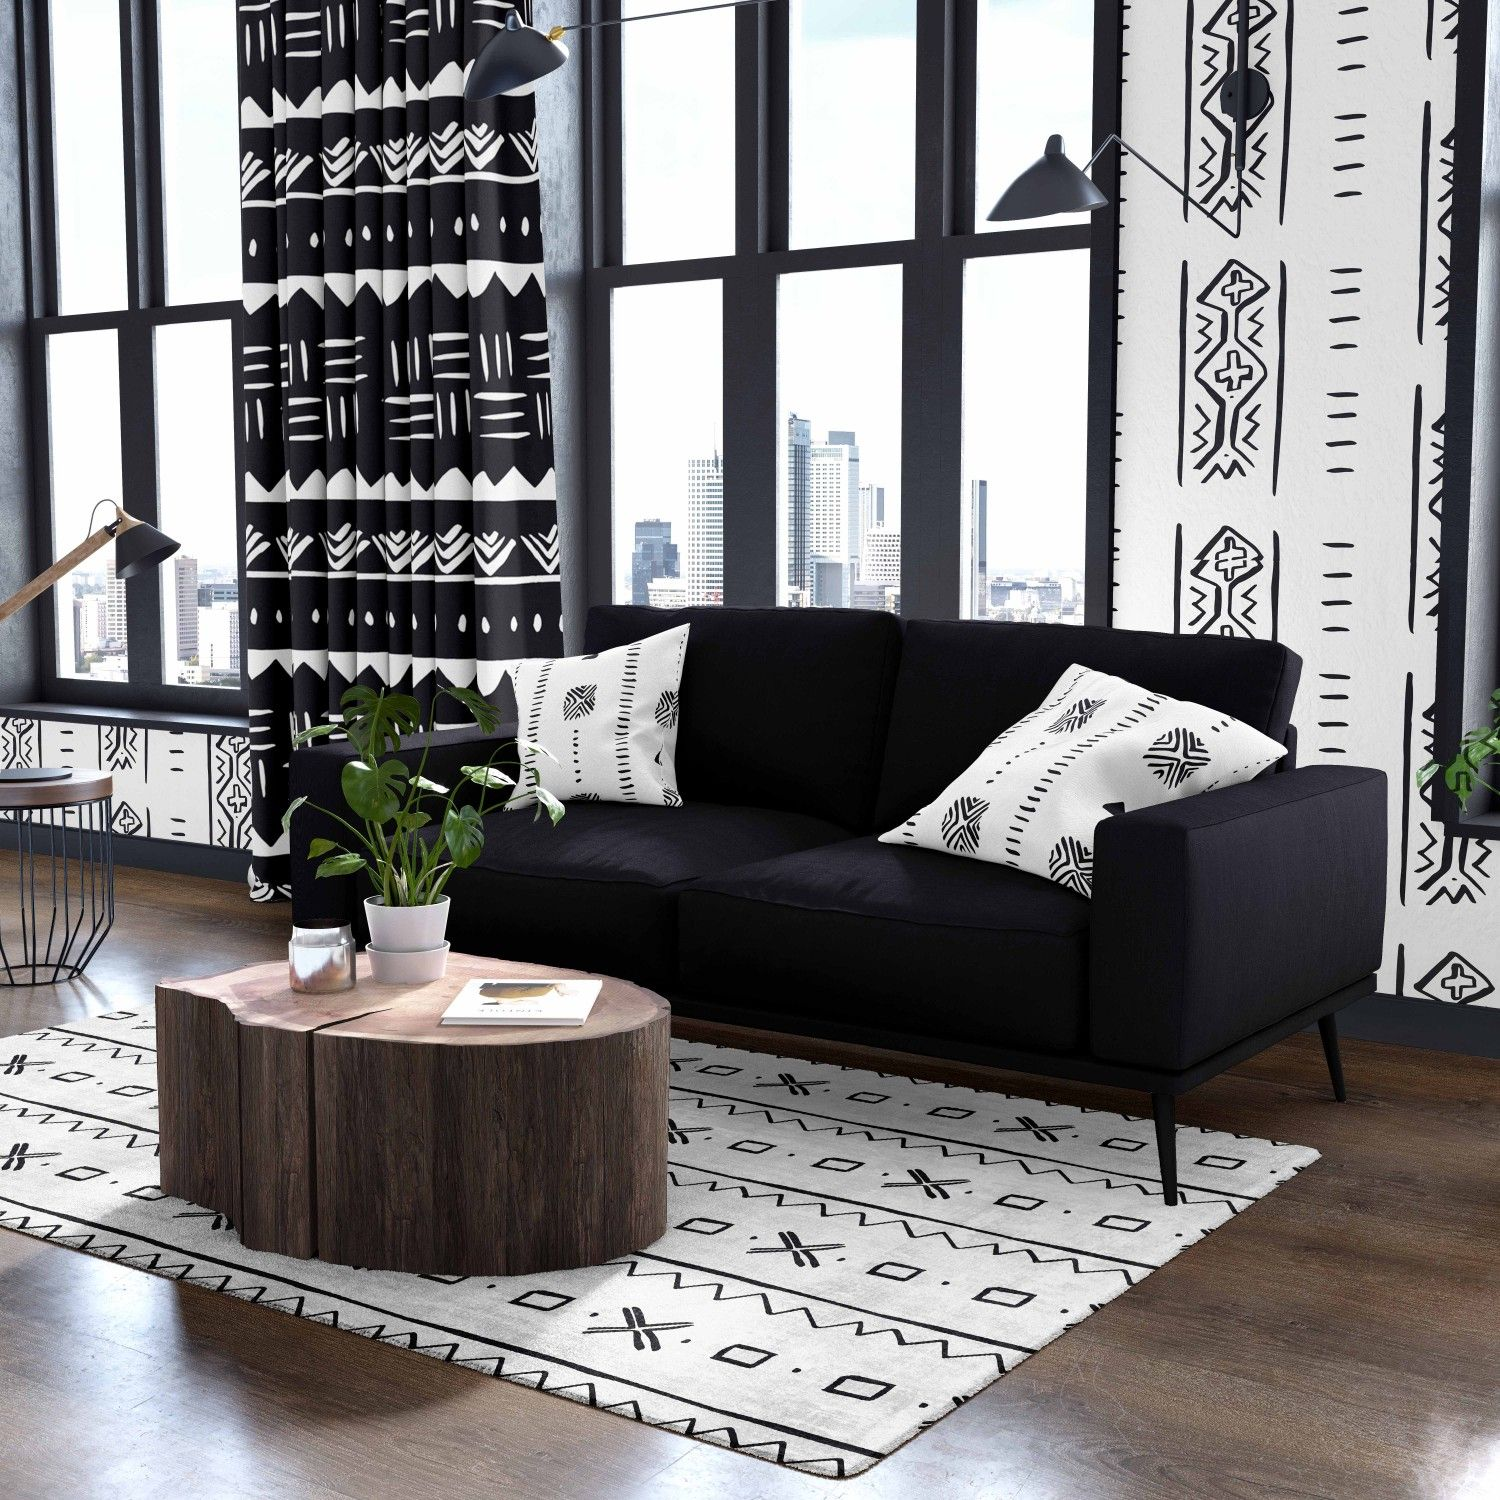 african mudcloth concept rug wallpaper curtain